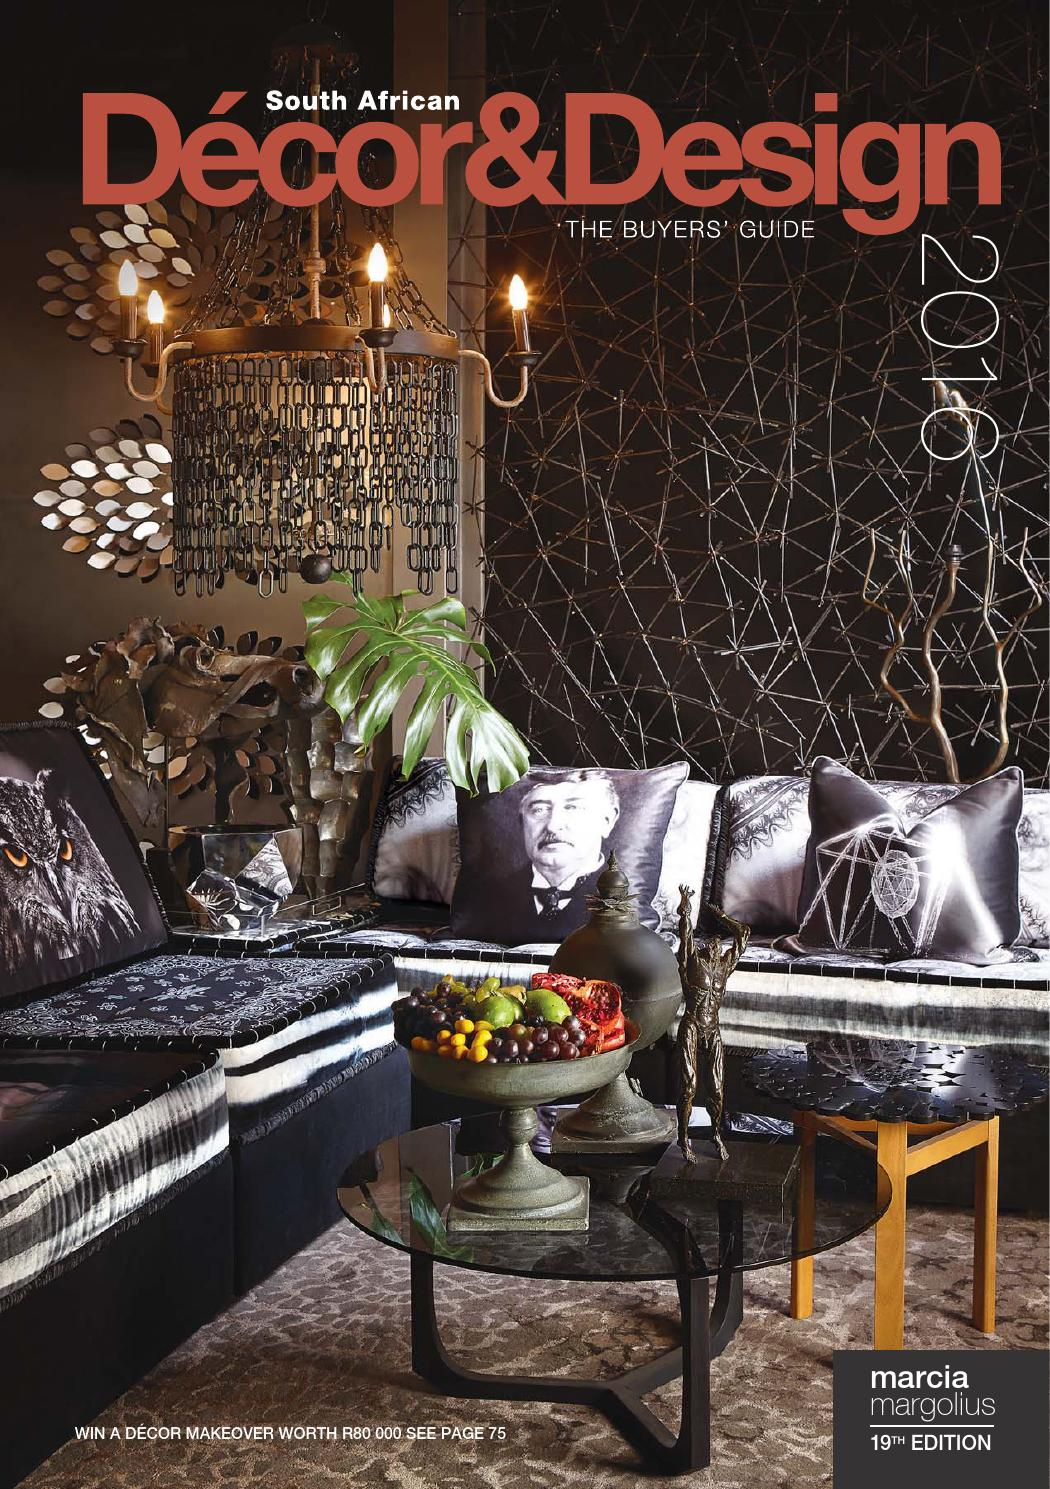 Decor De Parterre Sa Decor And Design The Buyers Guide 2016 Edition